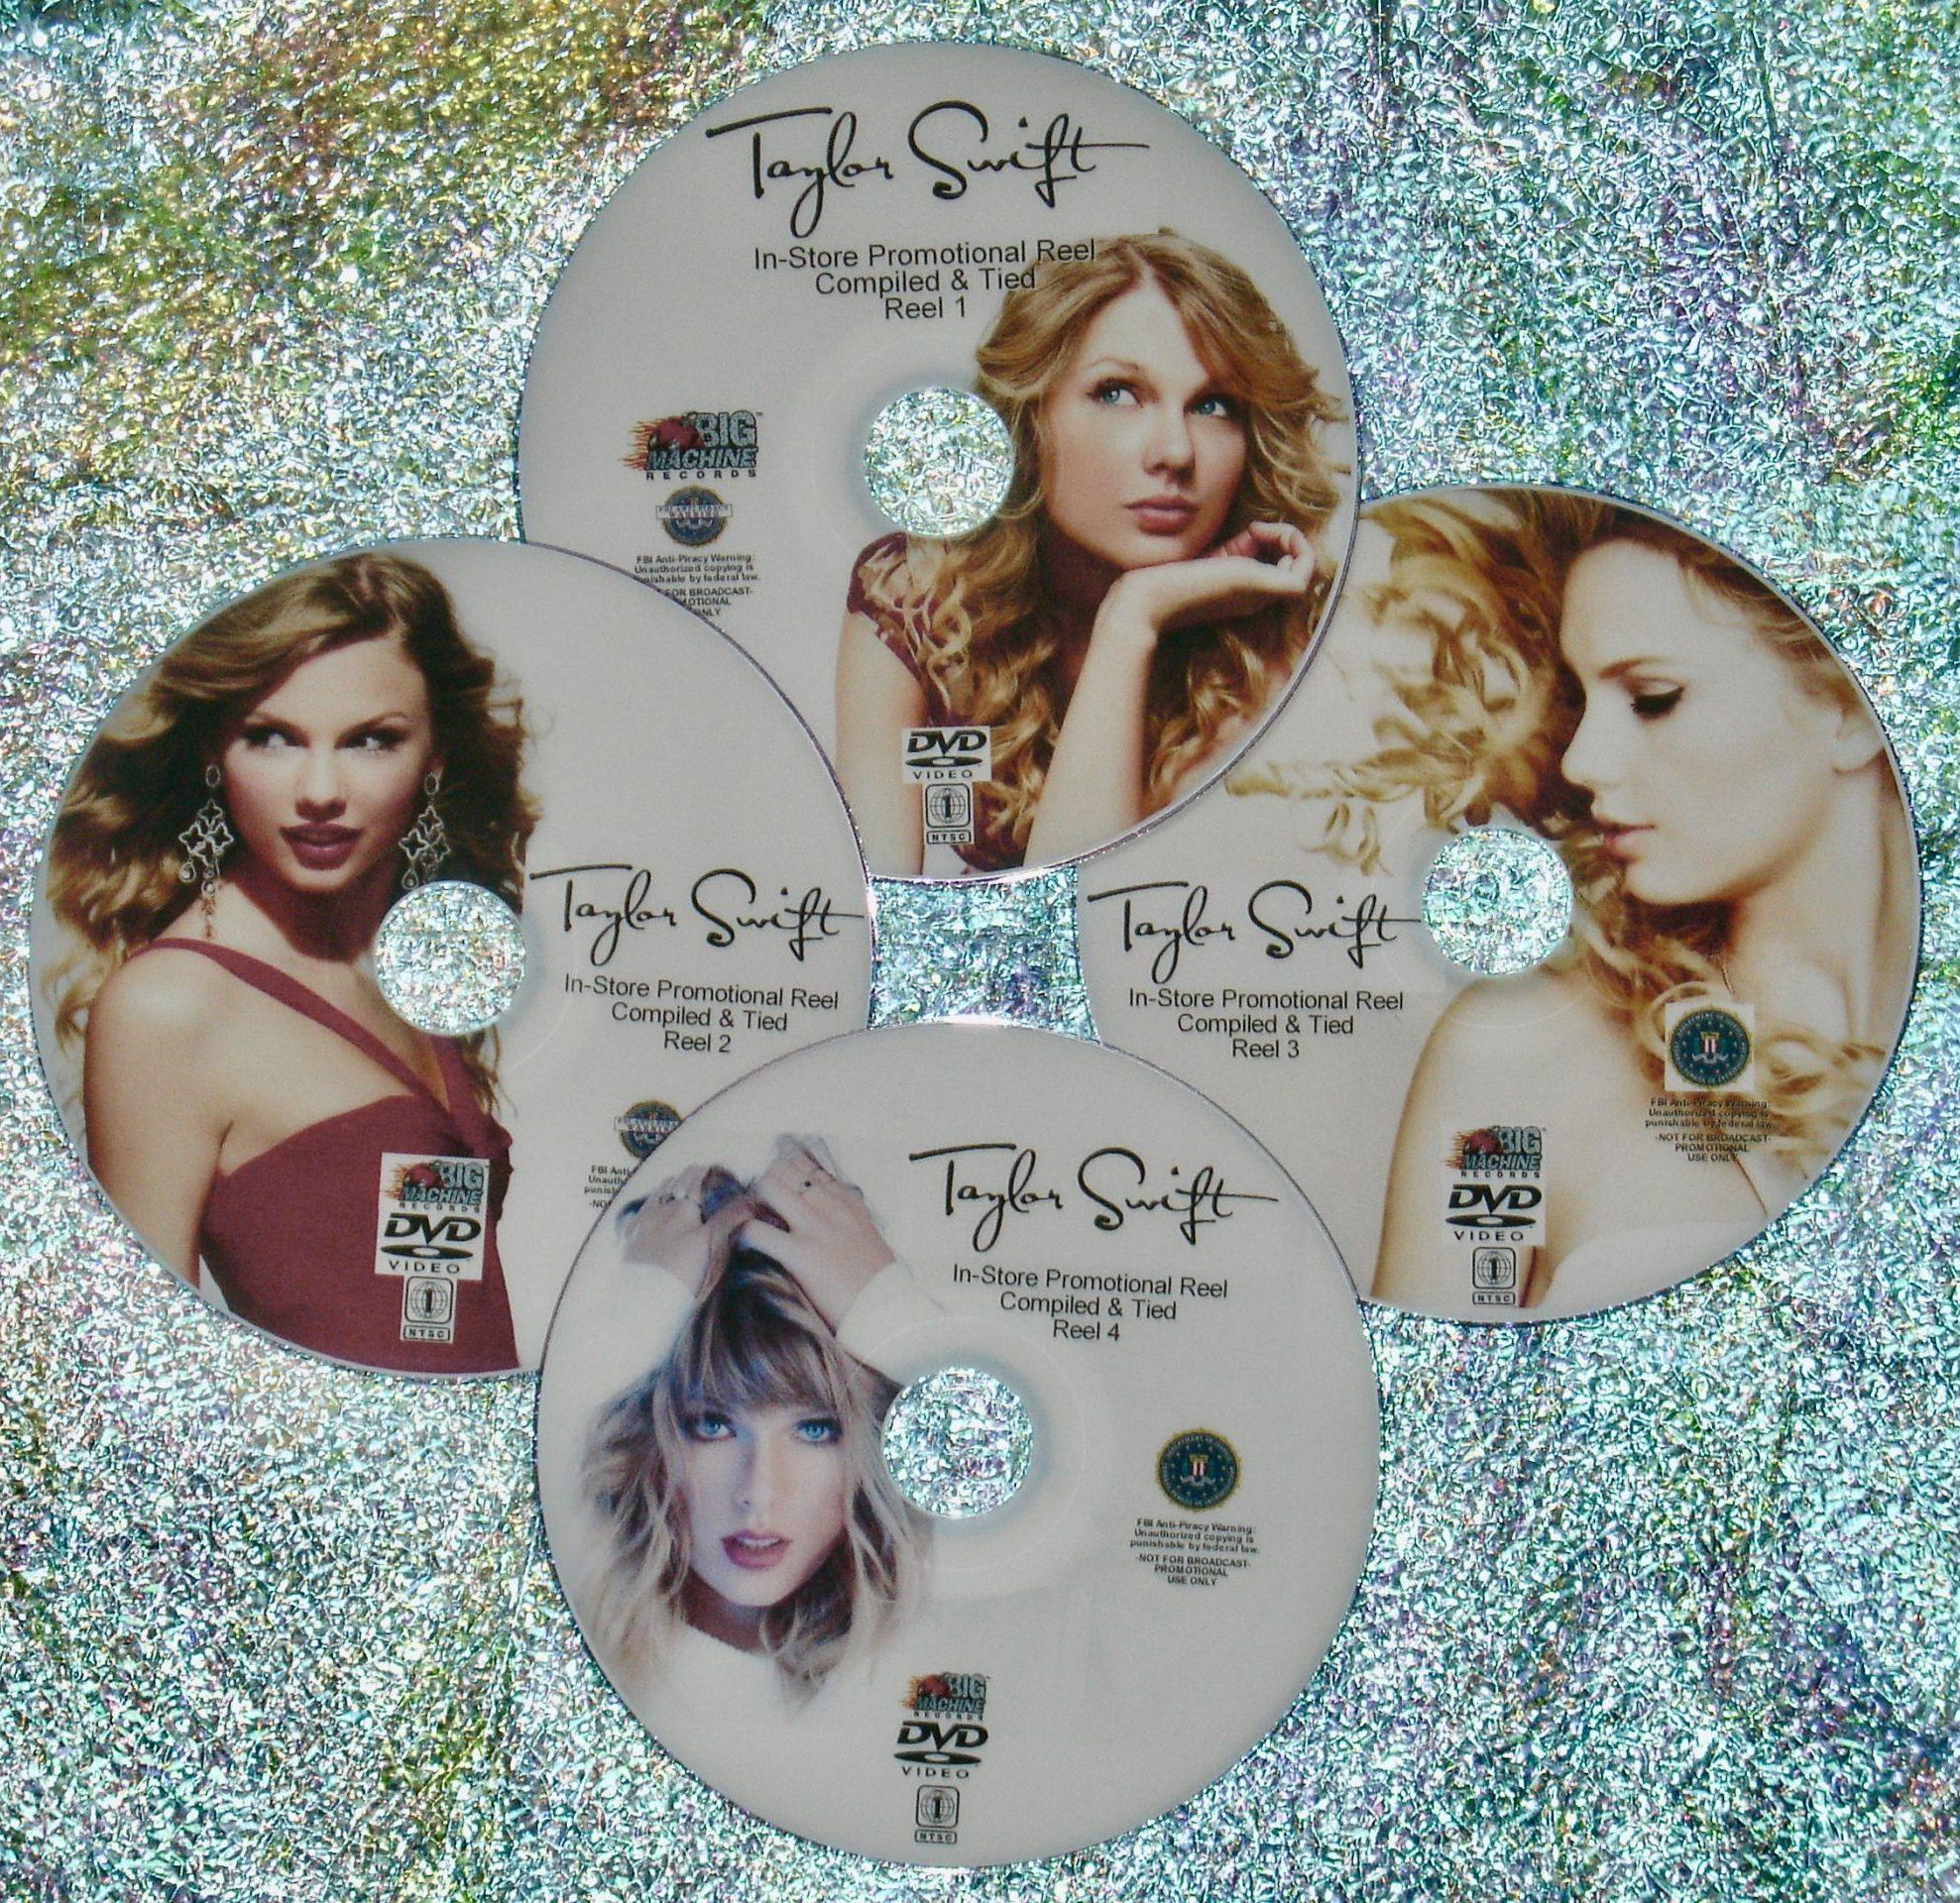 Taylor Swift 2006 2020 In Store Promotional Music Video Reel 4 Dvd Set 88 Videos Includes Latest Music Videos Cardigan Exile Lover You Need To Calm Down And Me Music Video Anthology Music Video Resource